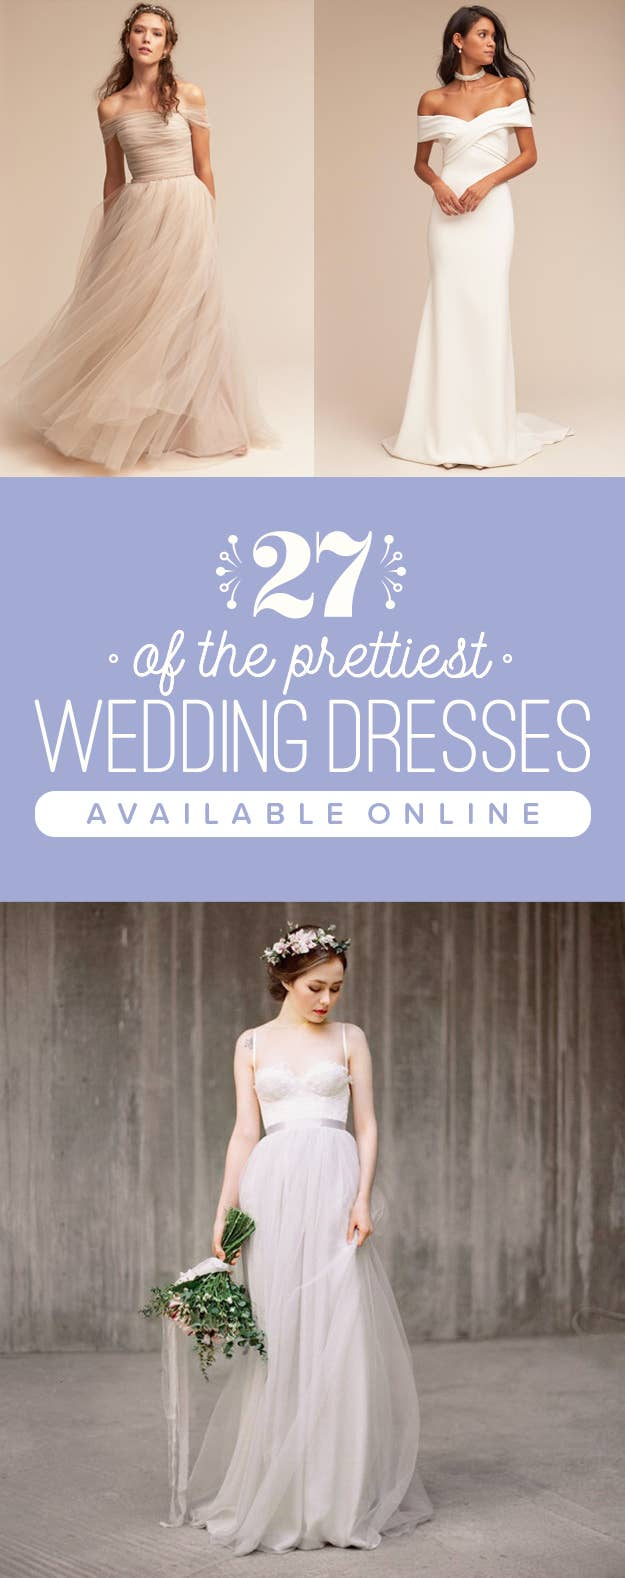 27 Completely Gorgeous Wedding Dresses You Can Order Online